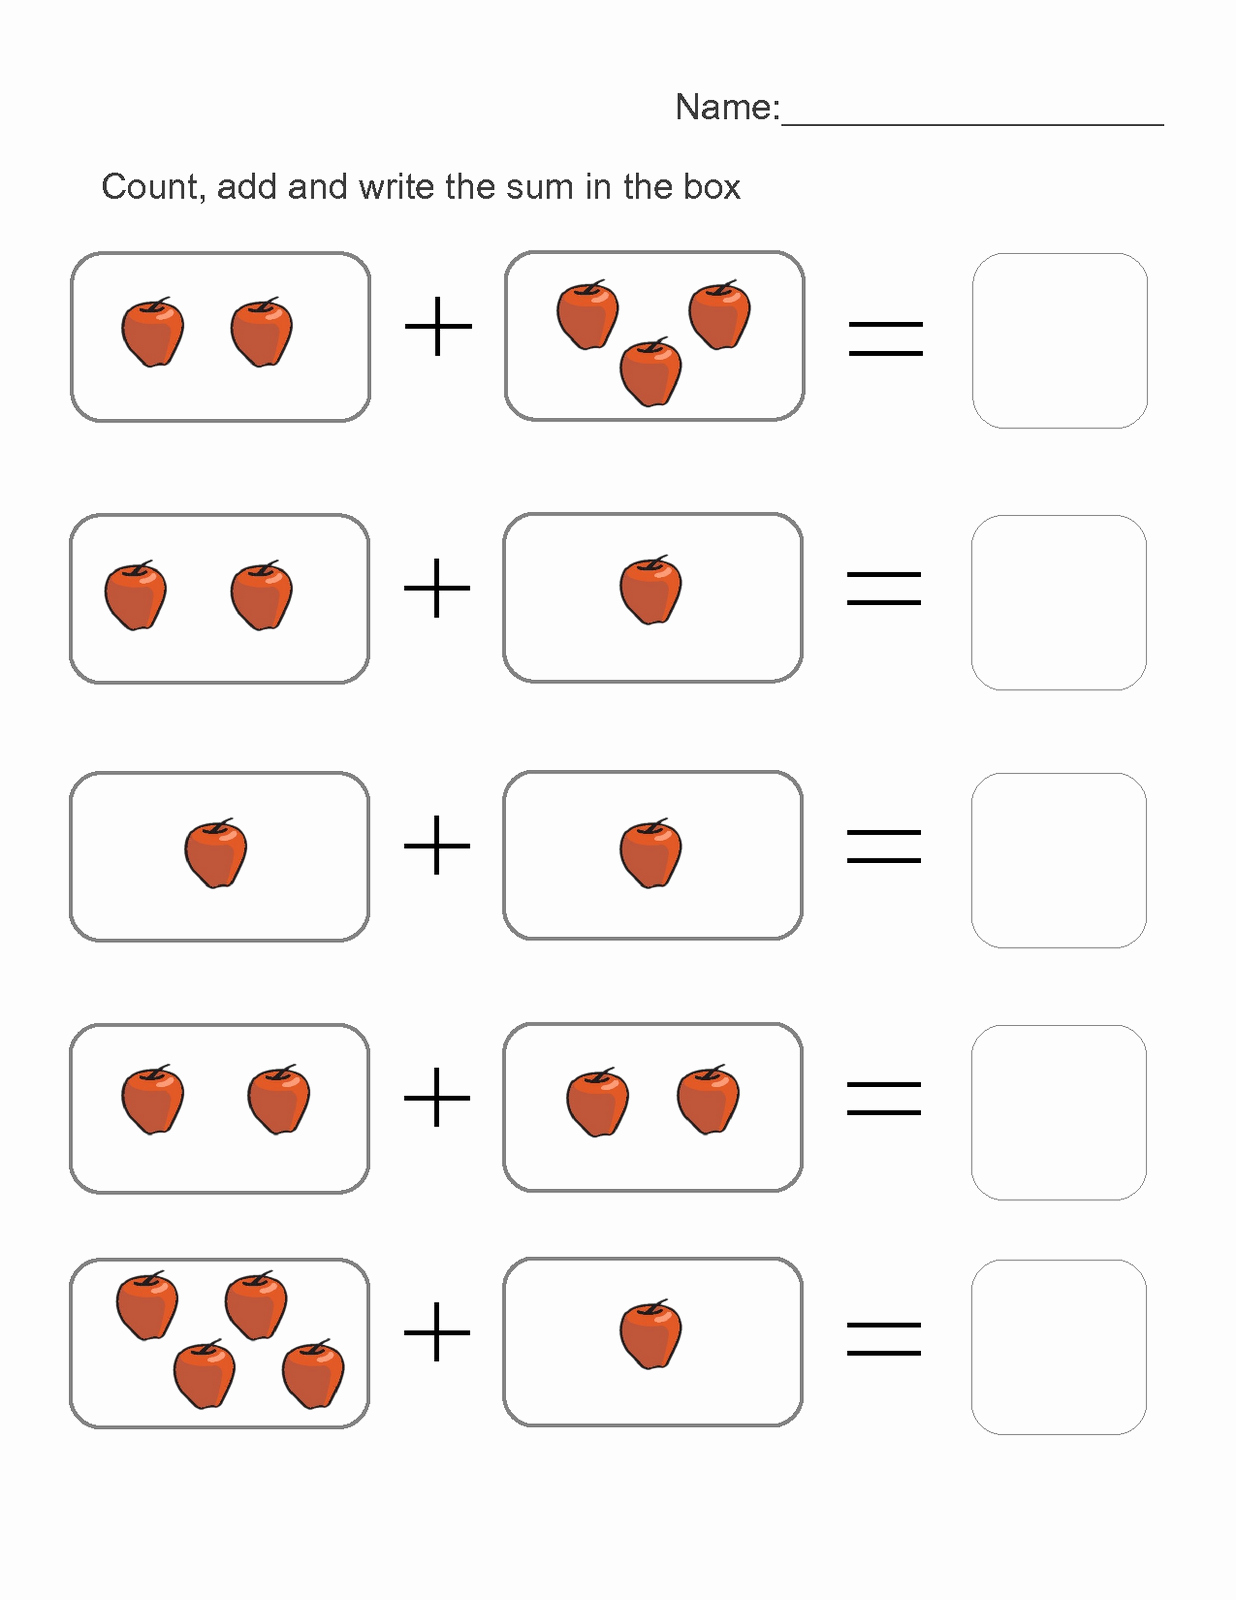 Addition Worksheets with Pictures Inspirational Picture Math Worksheets to Print